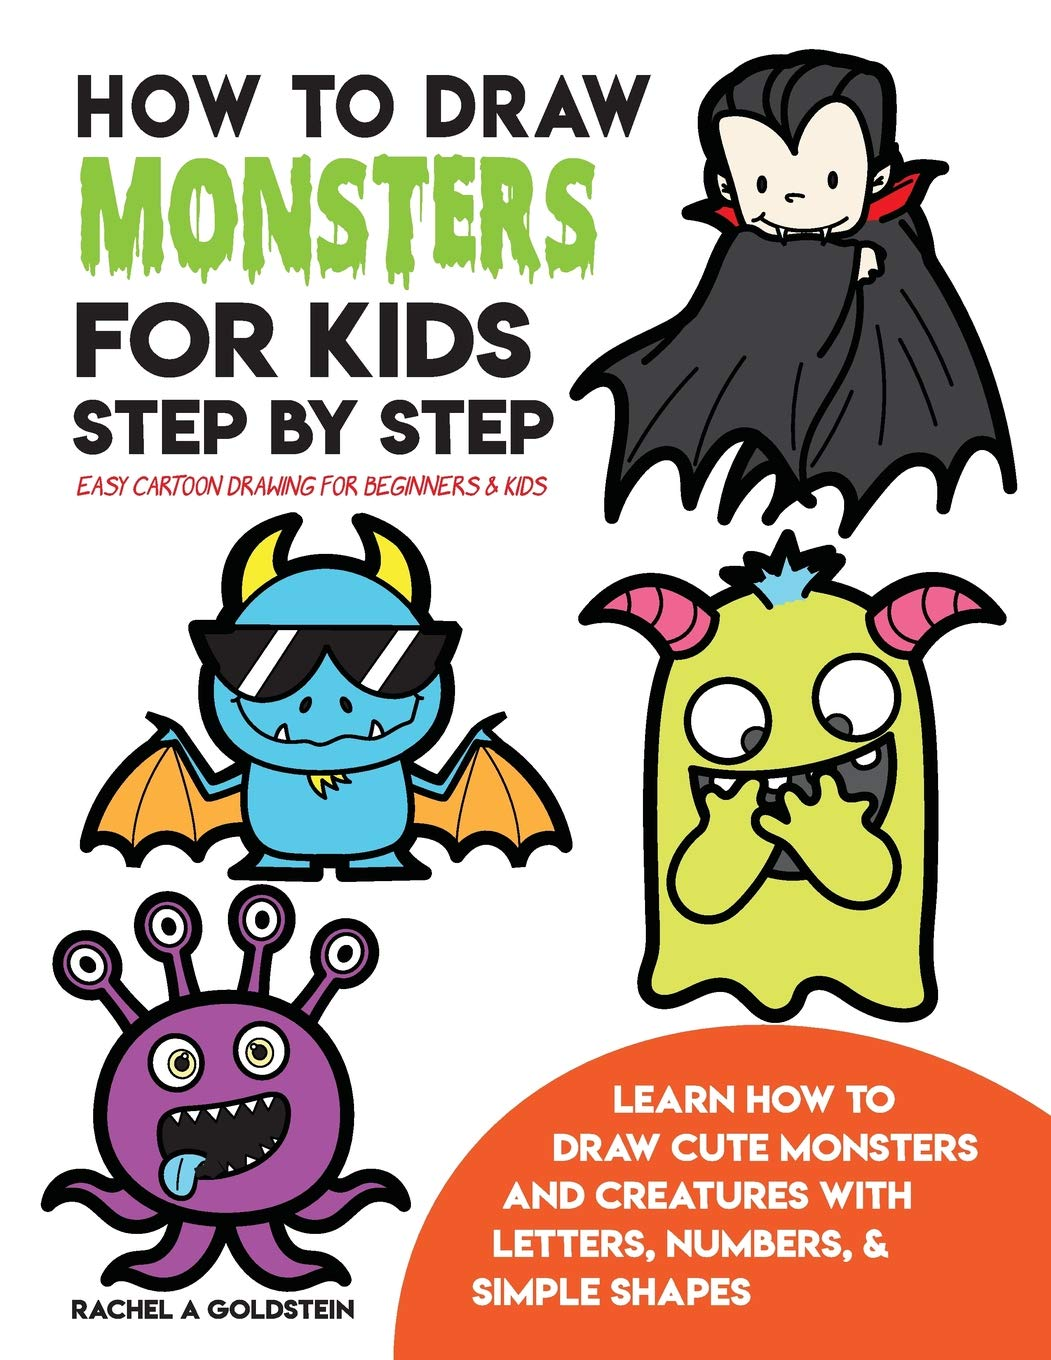 How to draw monsters for kids step by step easy cartoon drawing for beginners kids learn how to draw cute monsters and creatures with letters